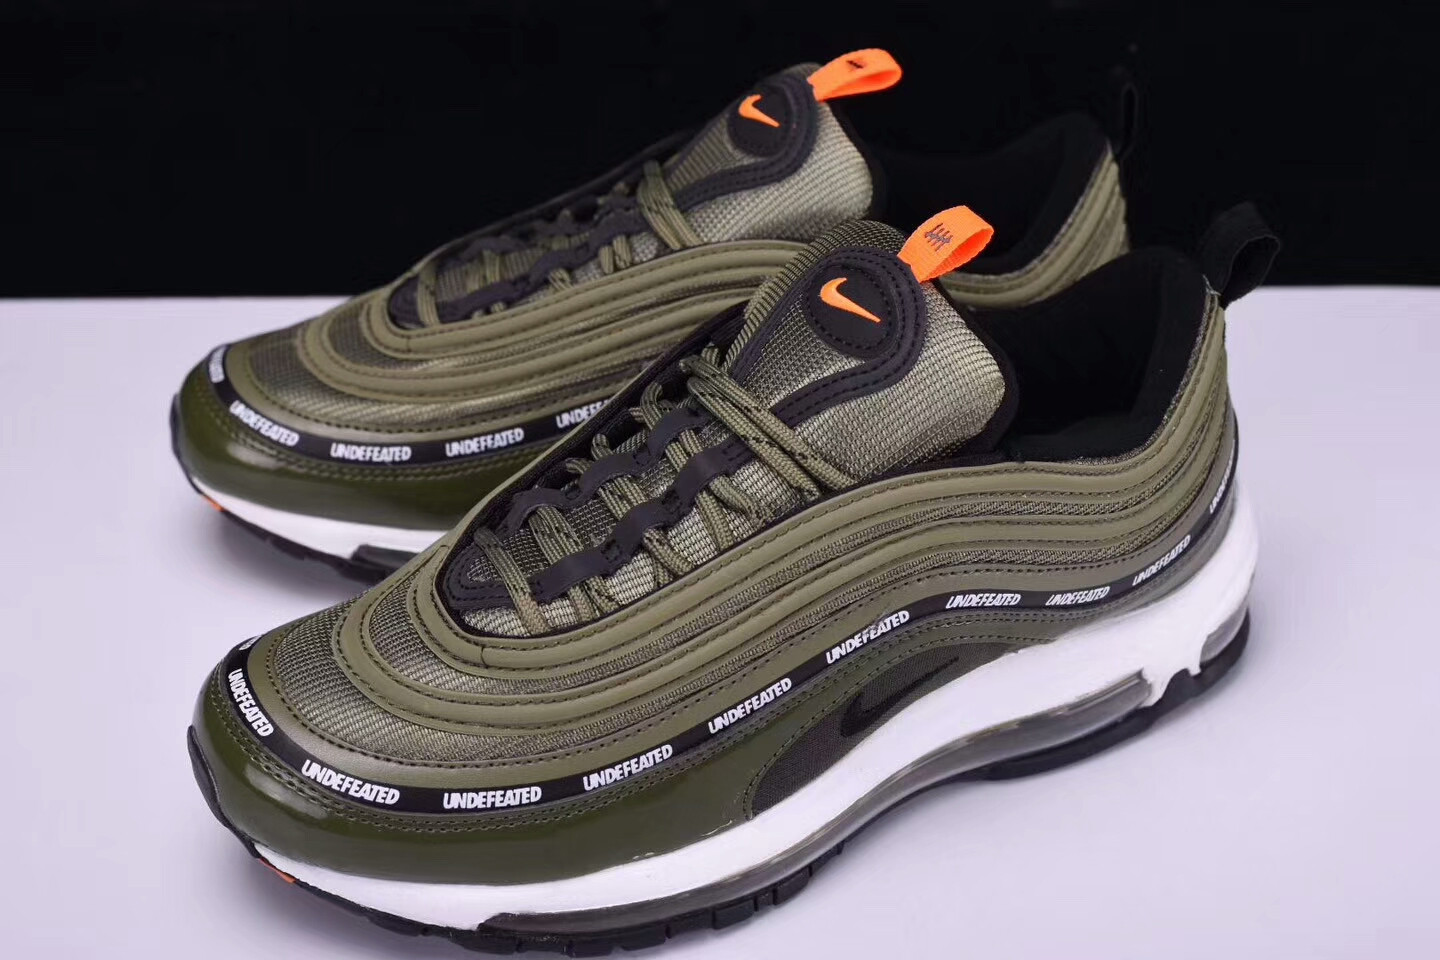 undefeated air max 97